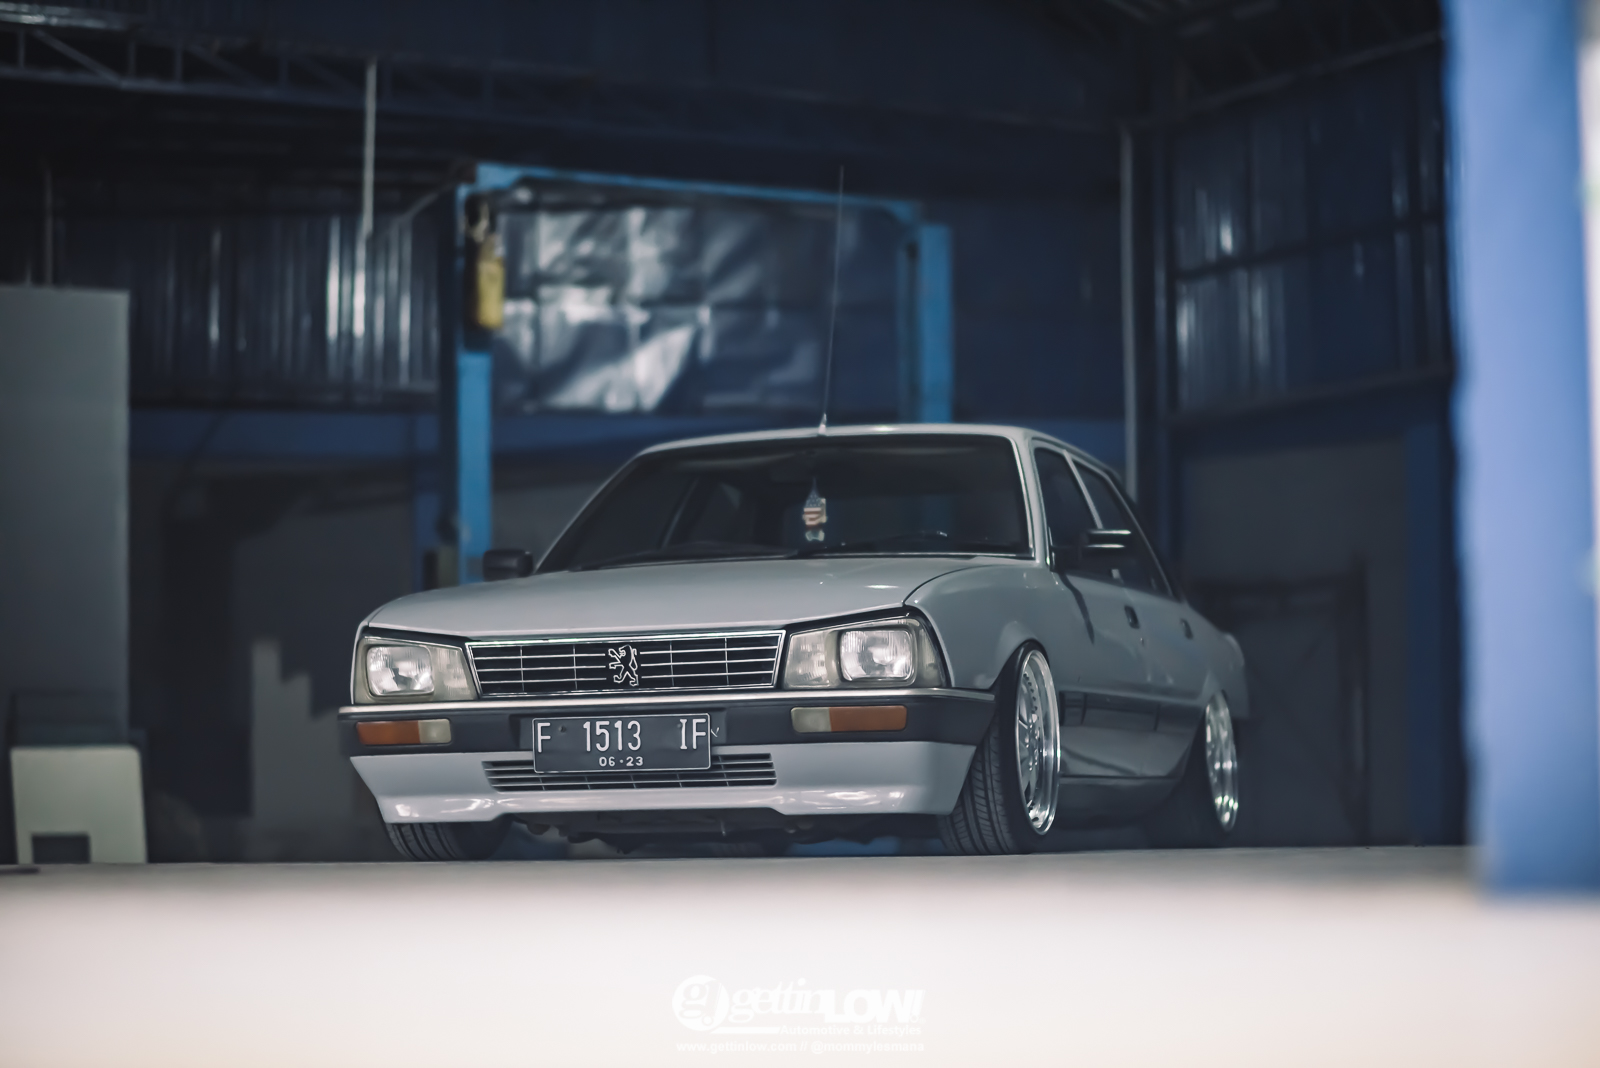 Lowered To The Max Ekkitambo S 1988 Peugeot 505 Gti Gettinlow